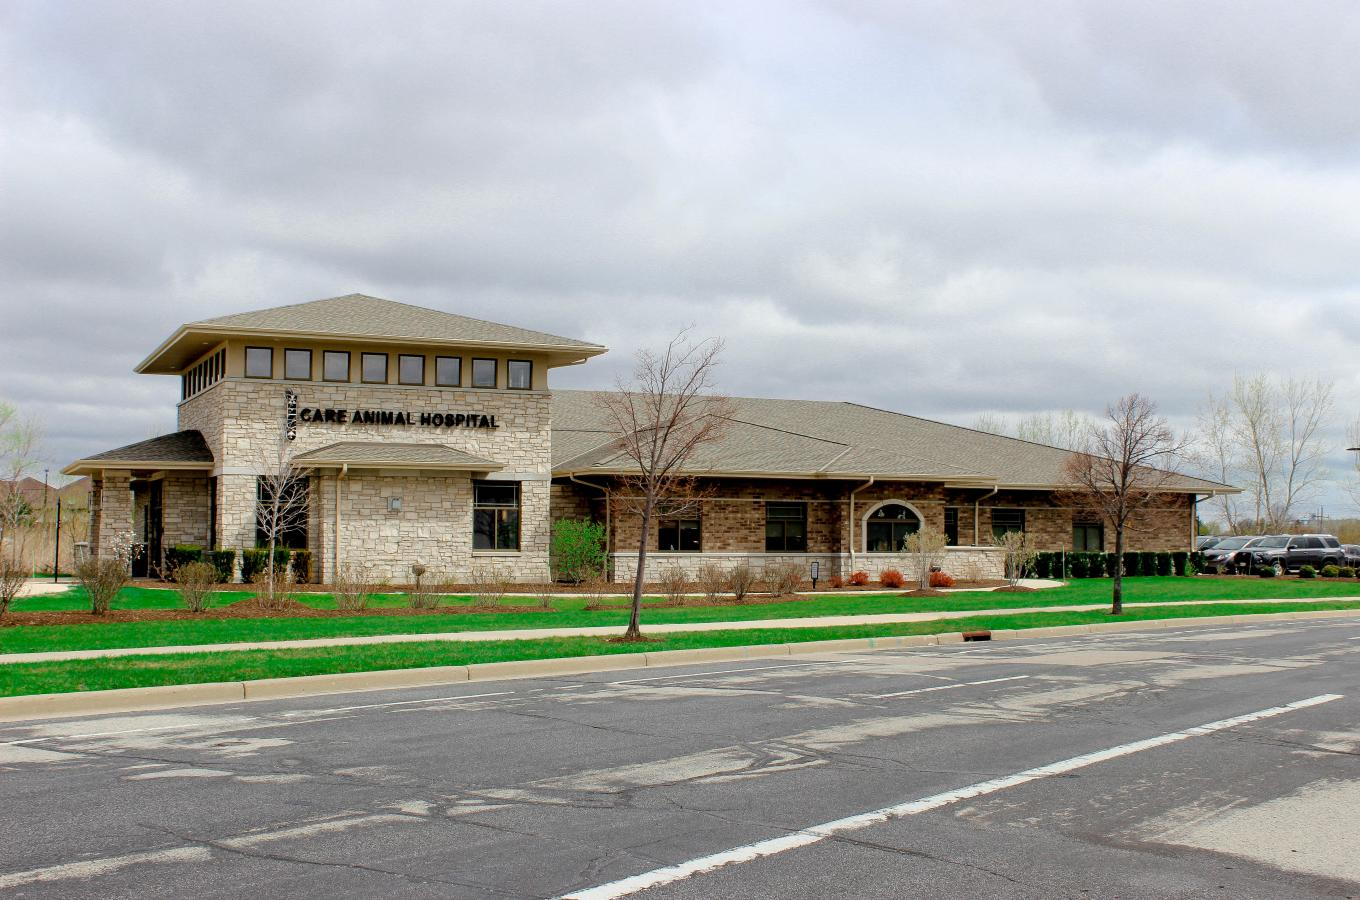 Care Animal Hospital Building